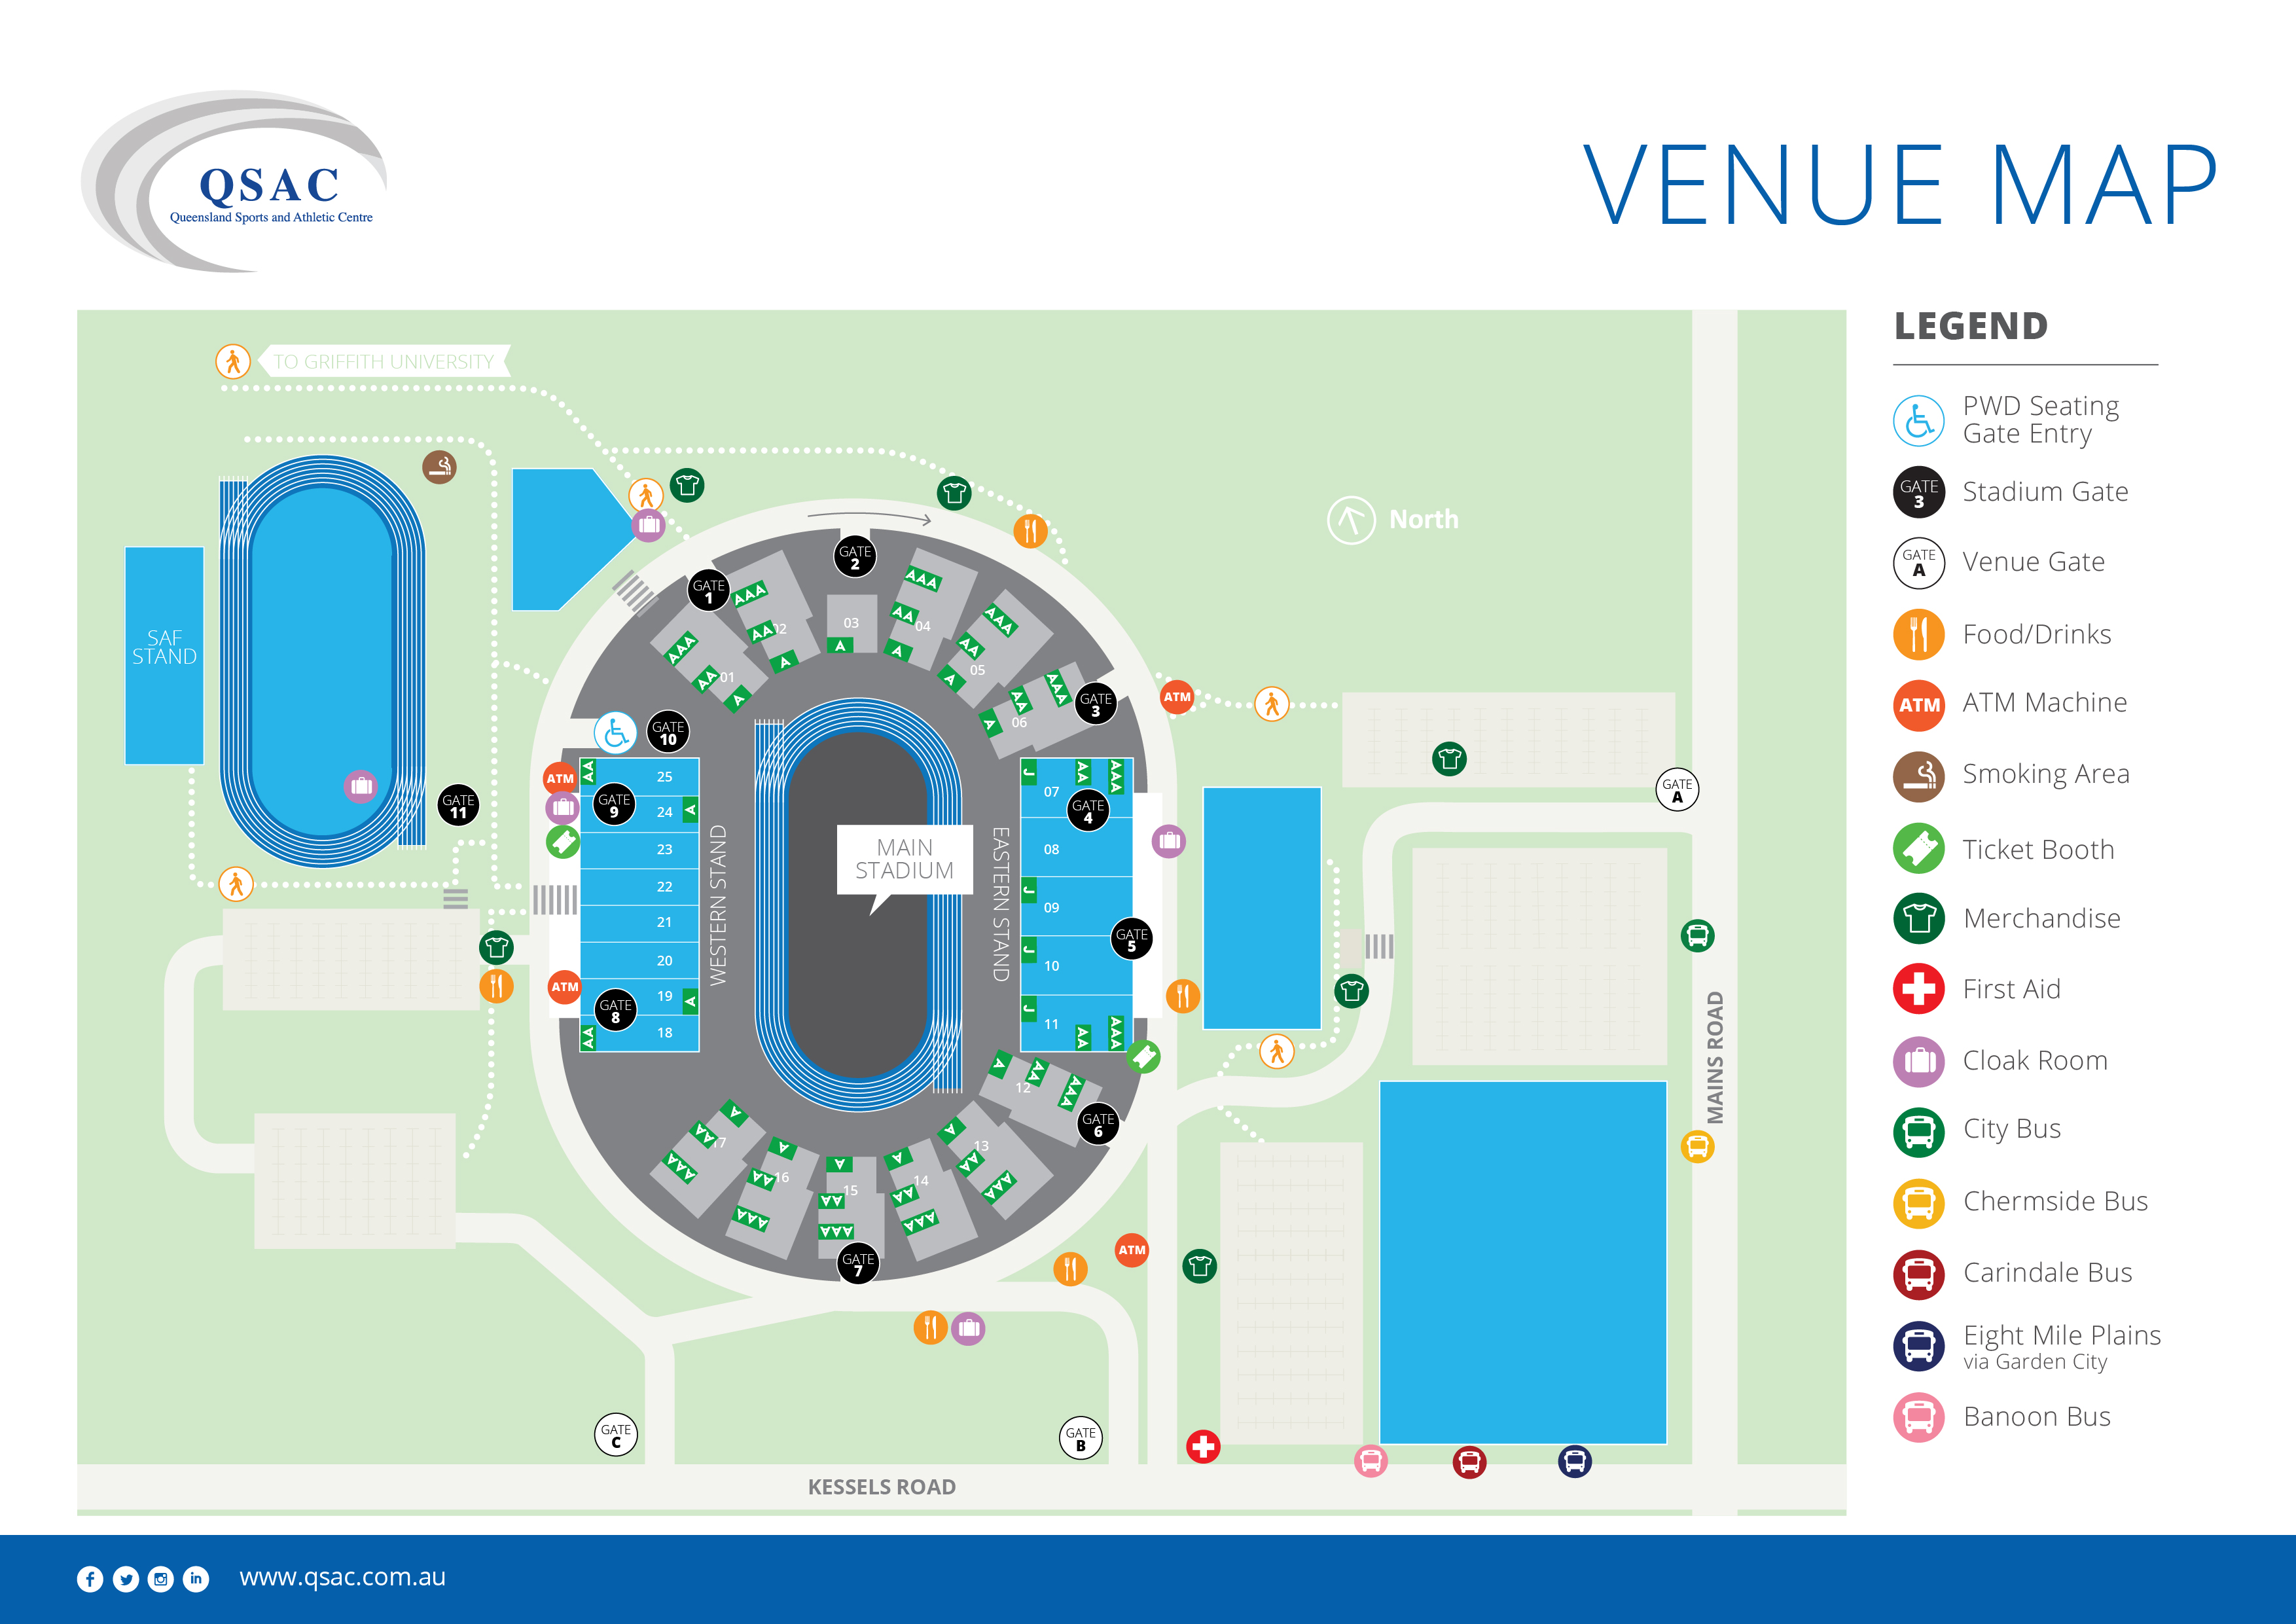 QSAC - Venue Map Emer Seat Map on